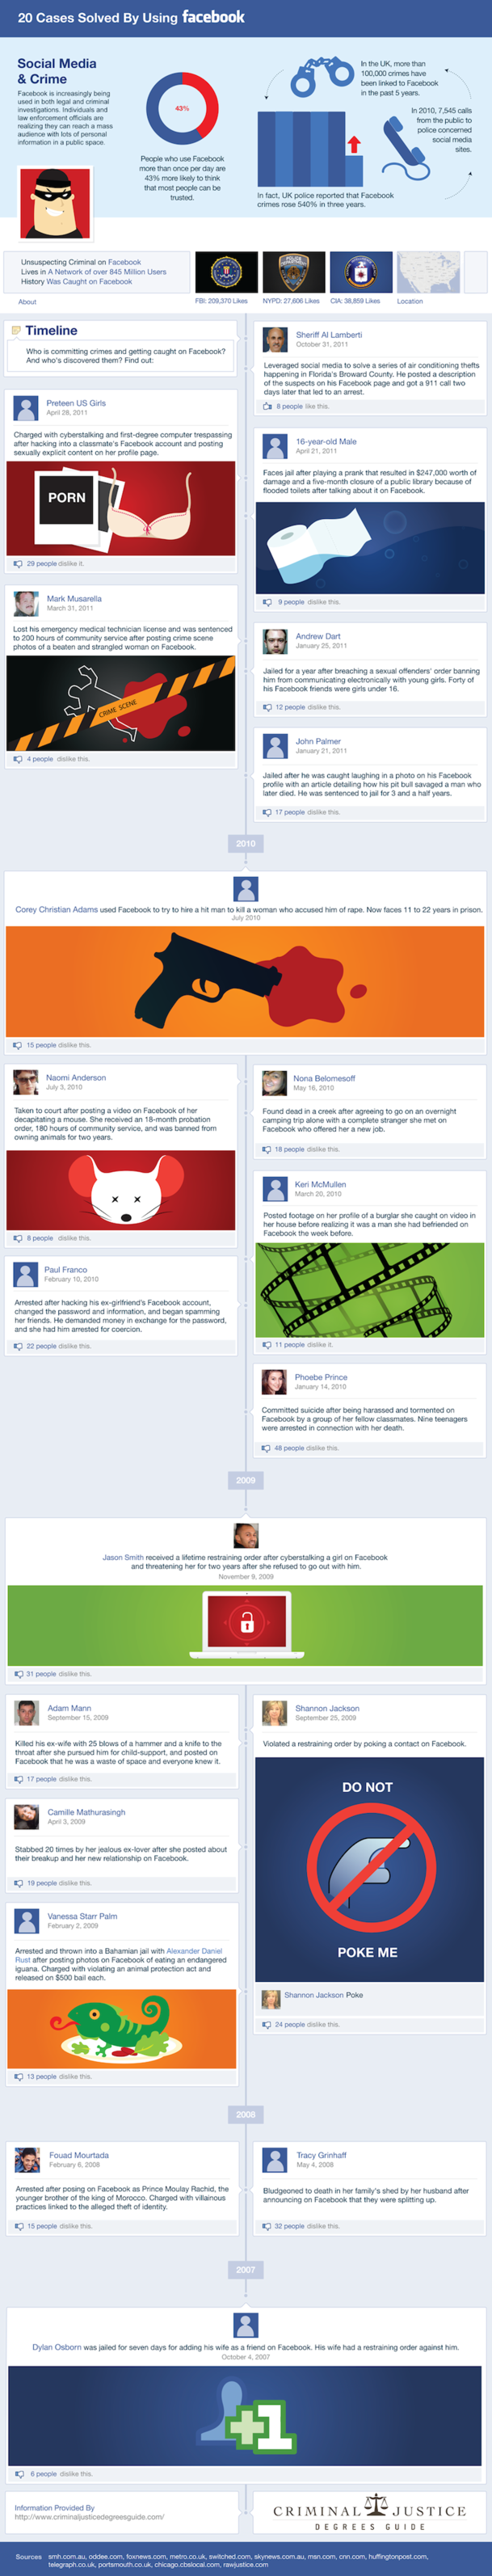 20-Cases-Solved-By-Using-Facebook-infographic